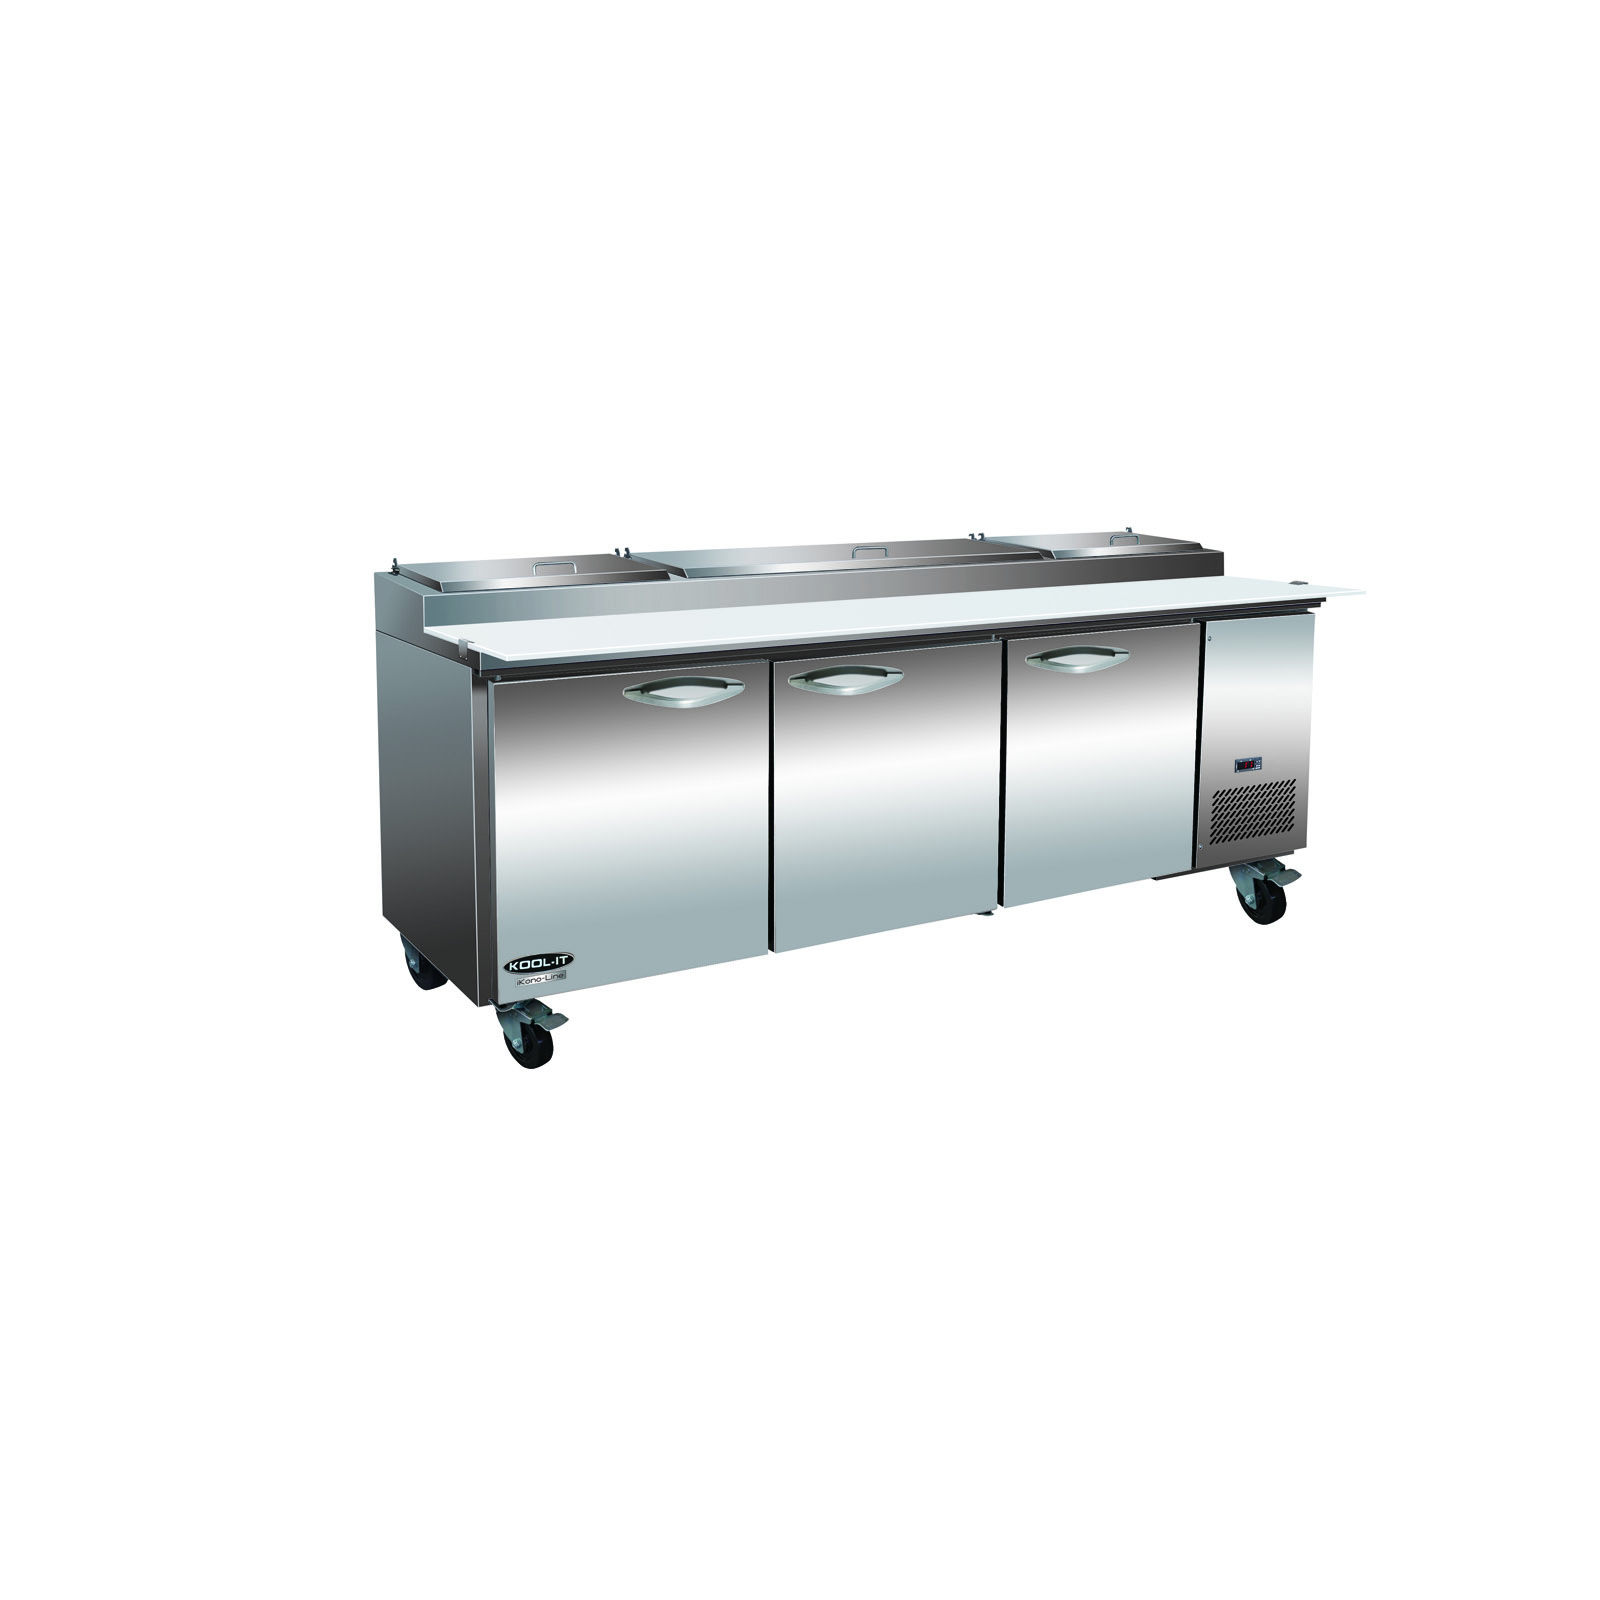 MVP IPP94-6D refrigerated counter, pizza prep table